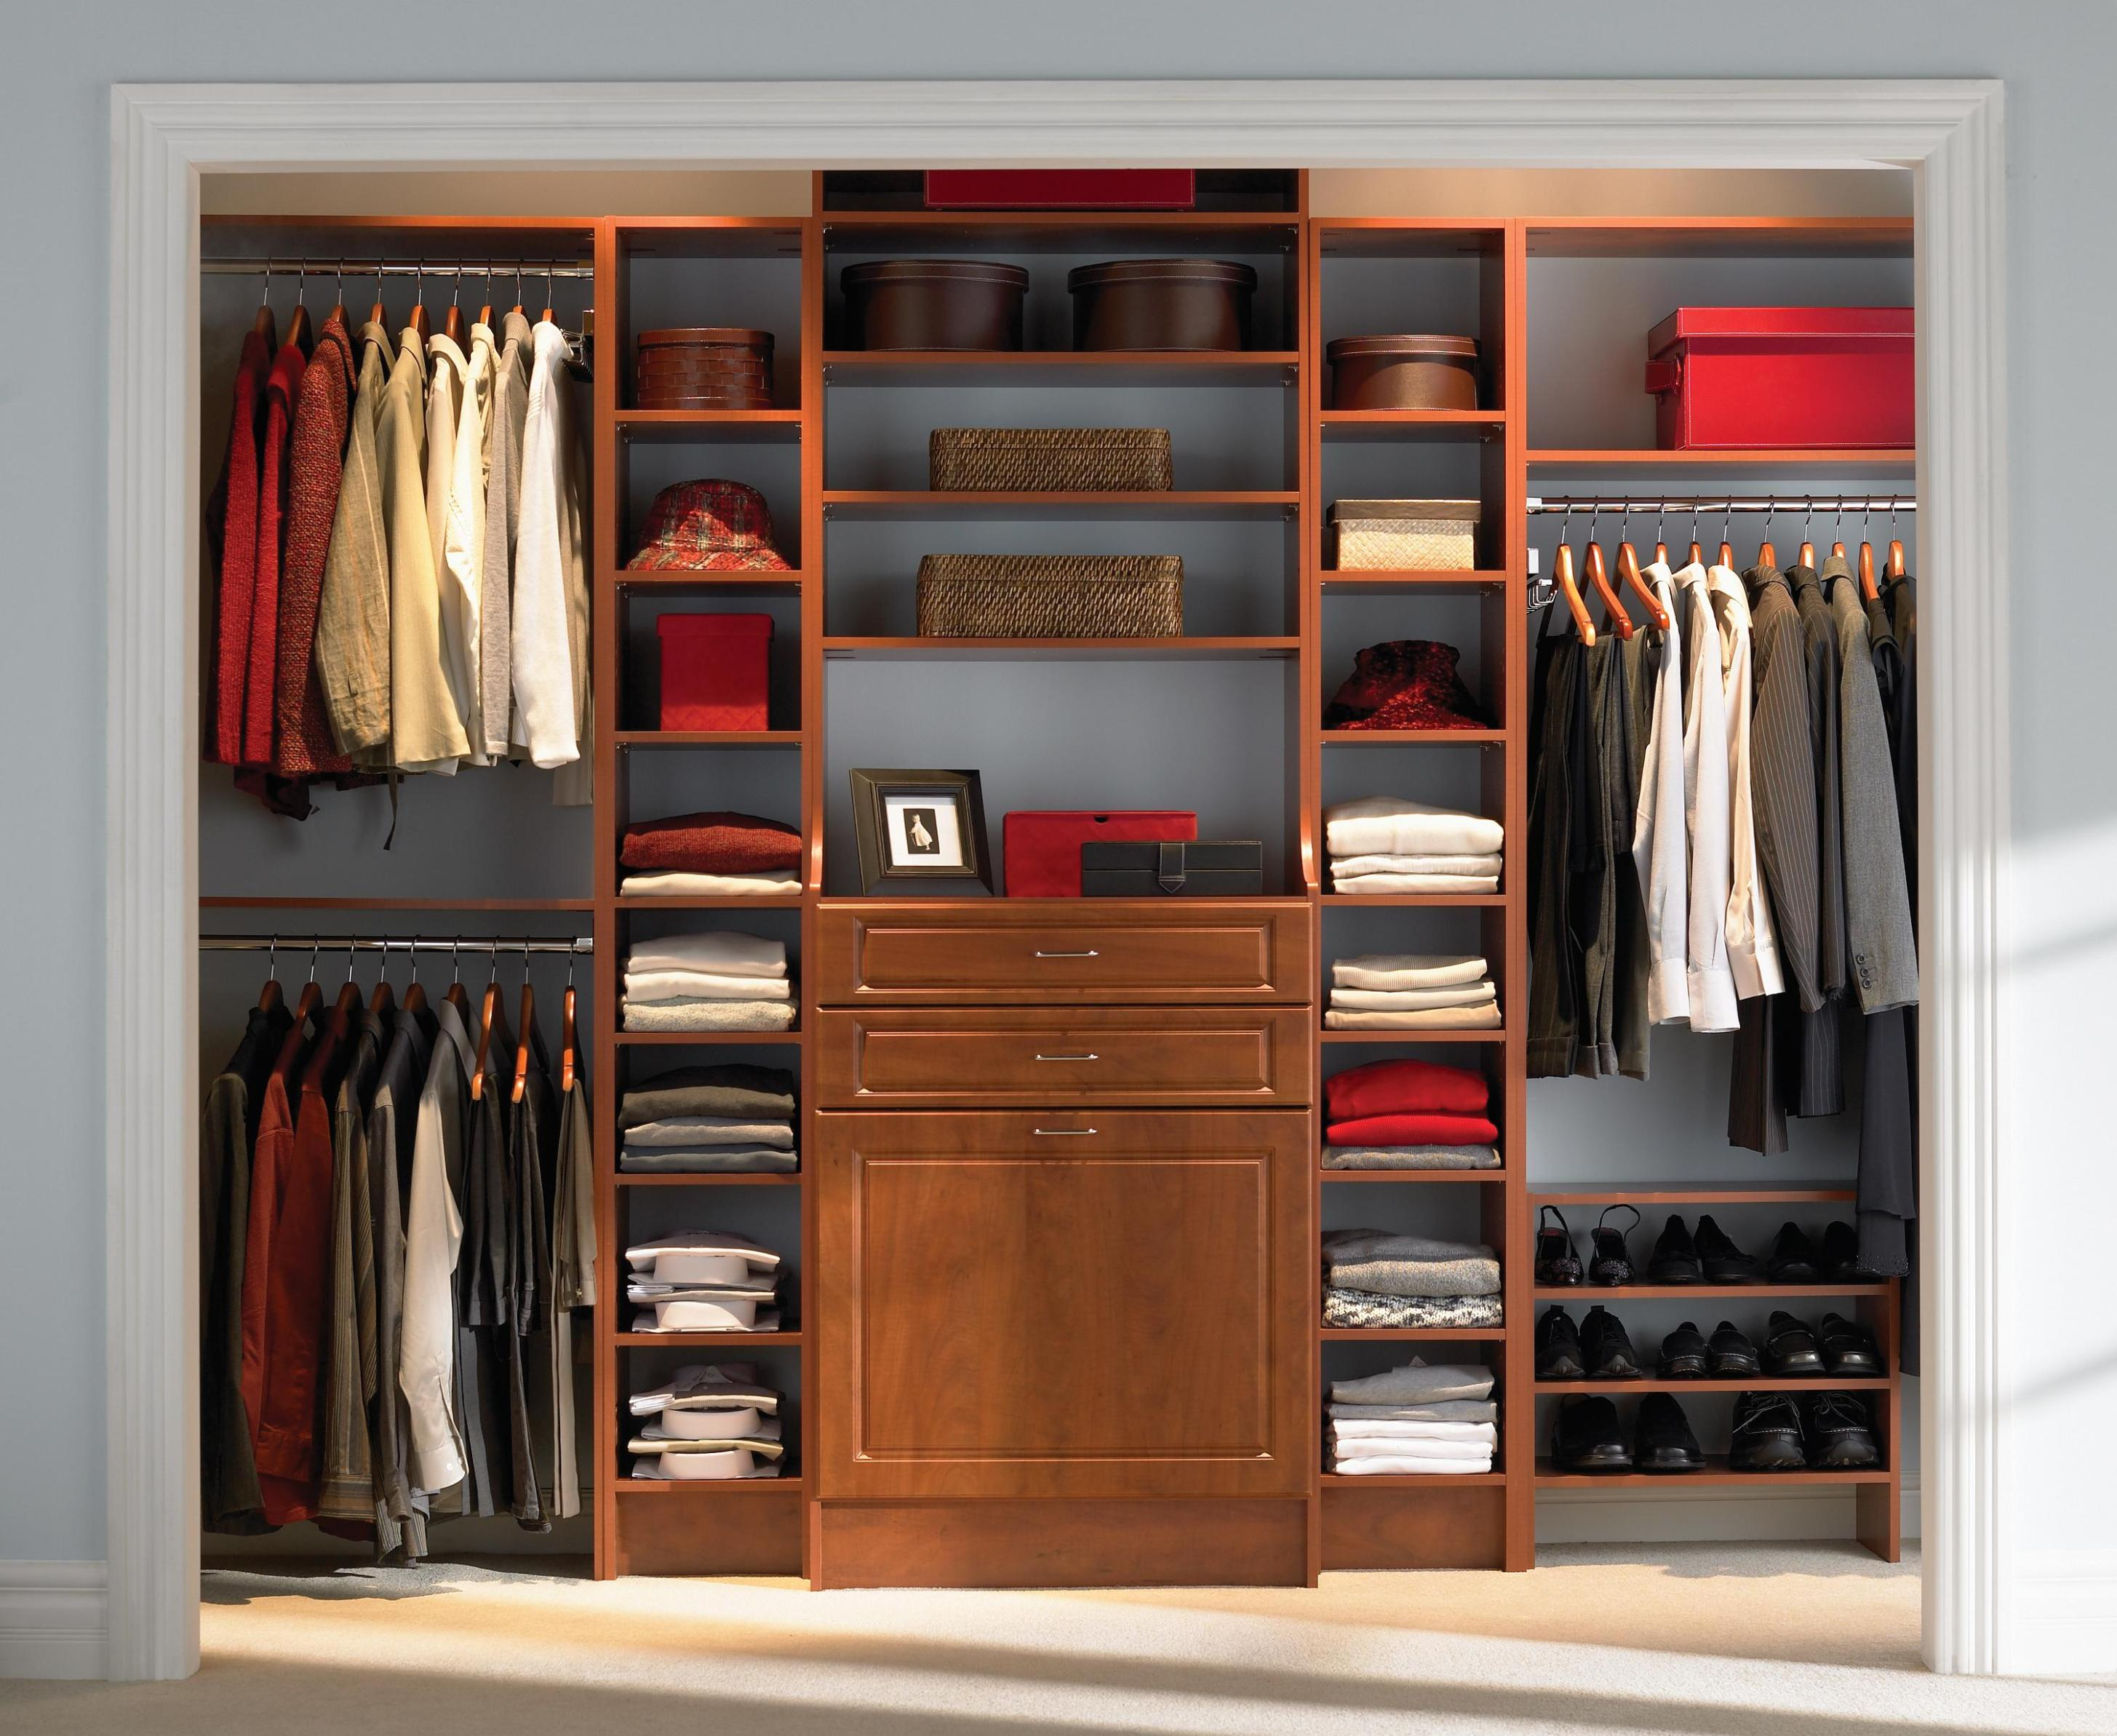 Discount Armoire | Freestanding Wardrobe | Cheap Wardrobe Closet